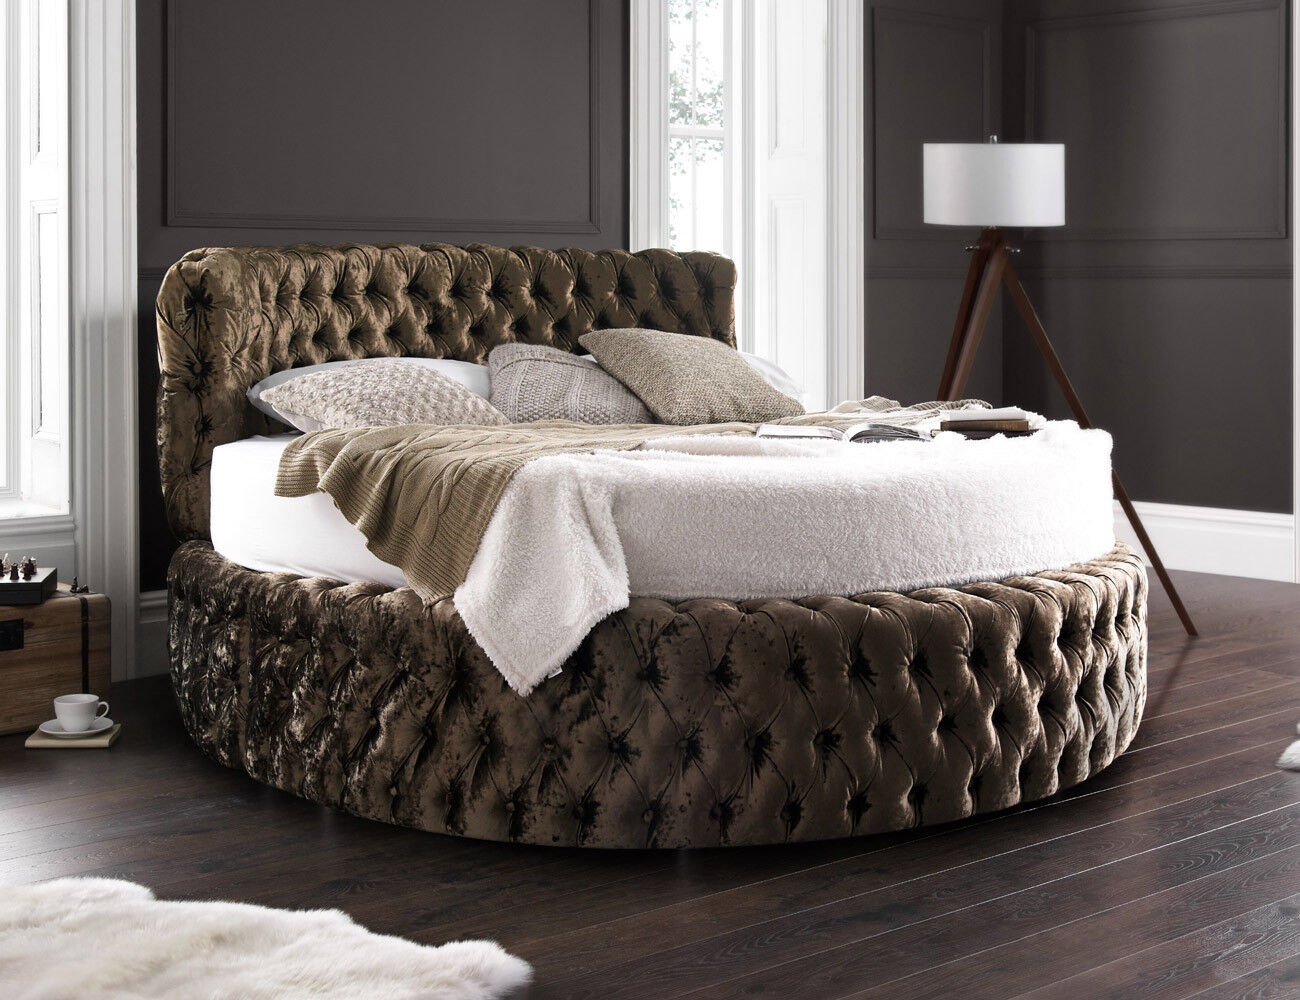 Glamour Chesterfield 7FT Round Bed With Headboard 210cm